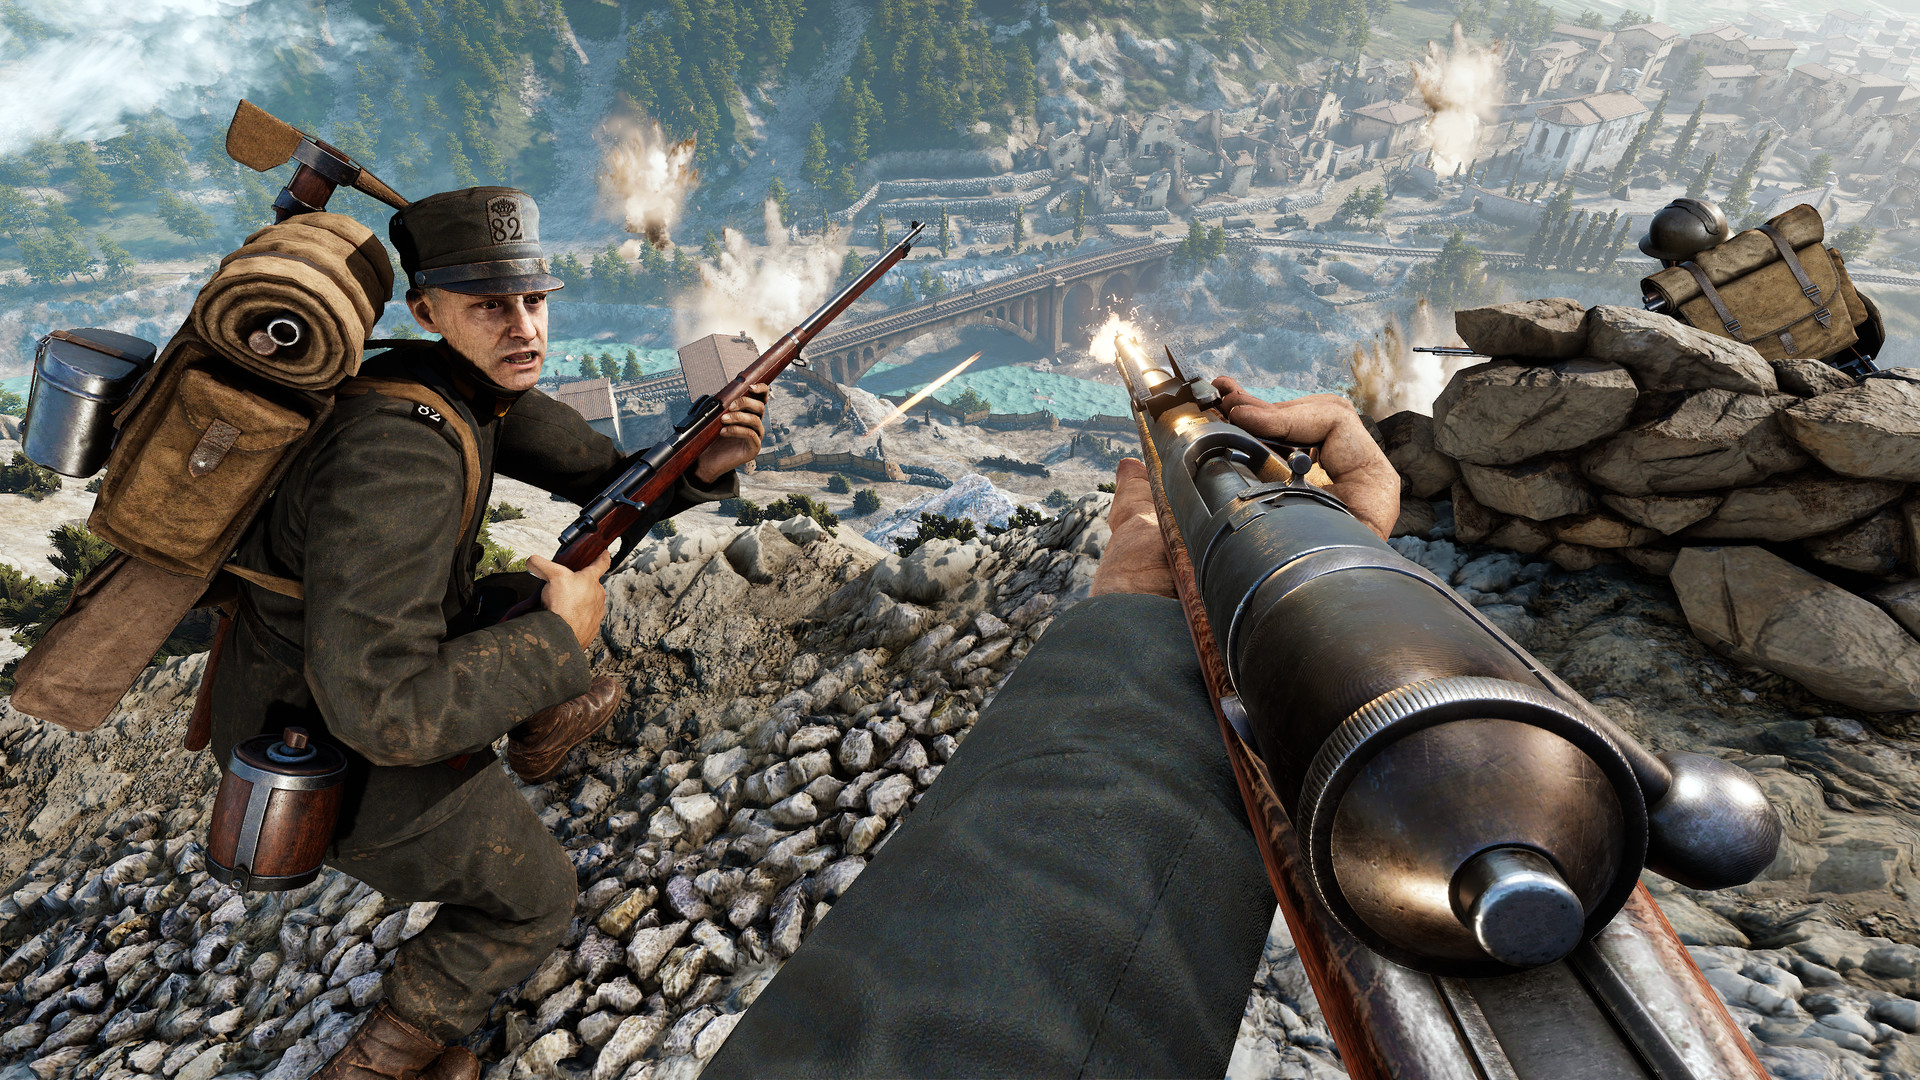 Isonzo screenshot 34651